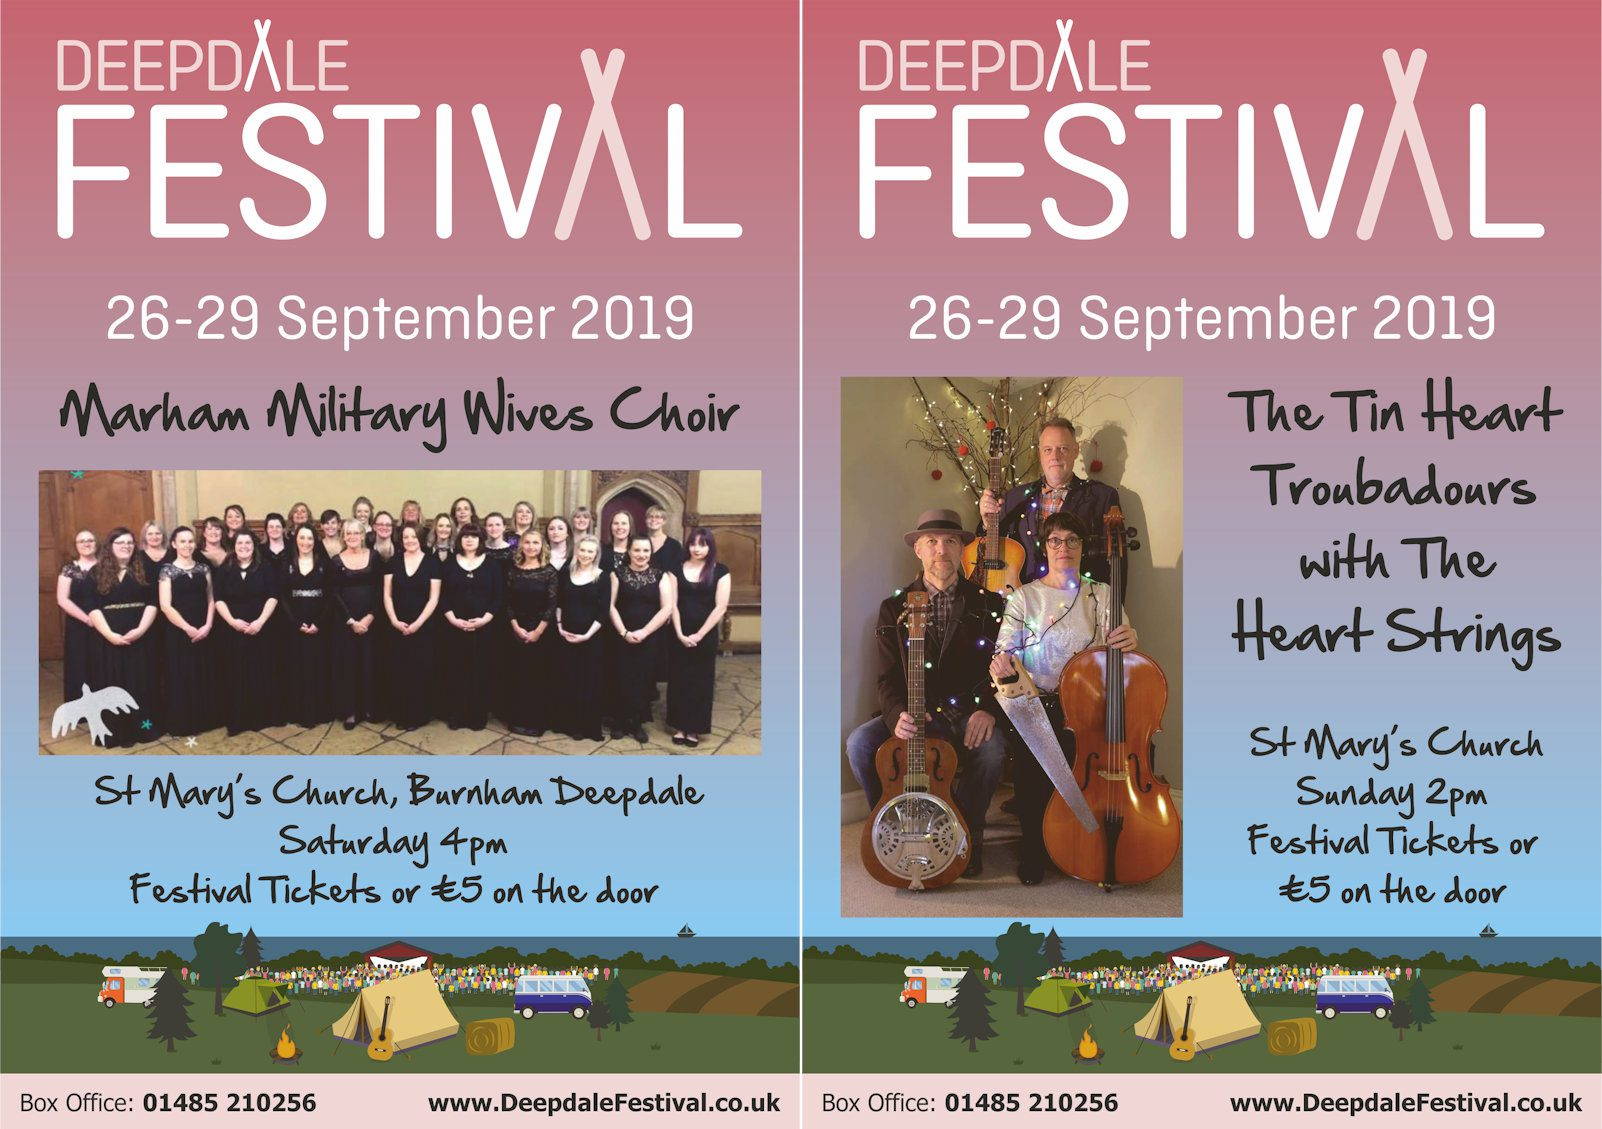 Special Concerts in St Mary's Church